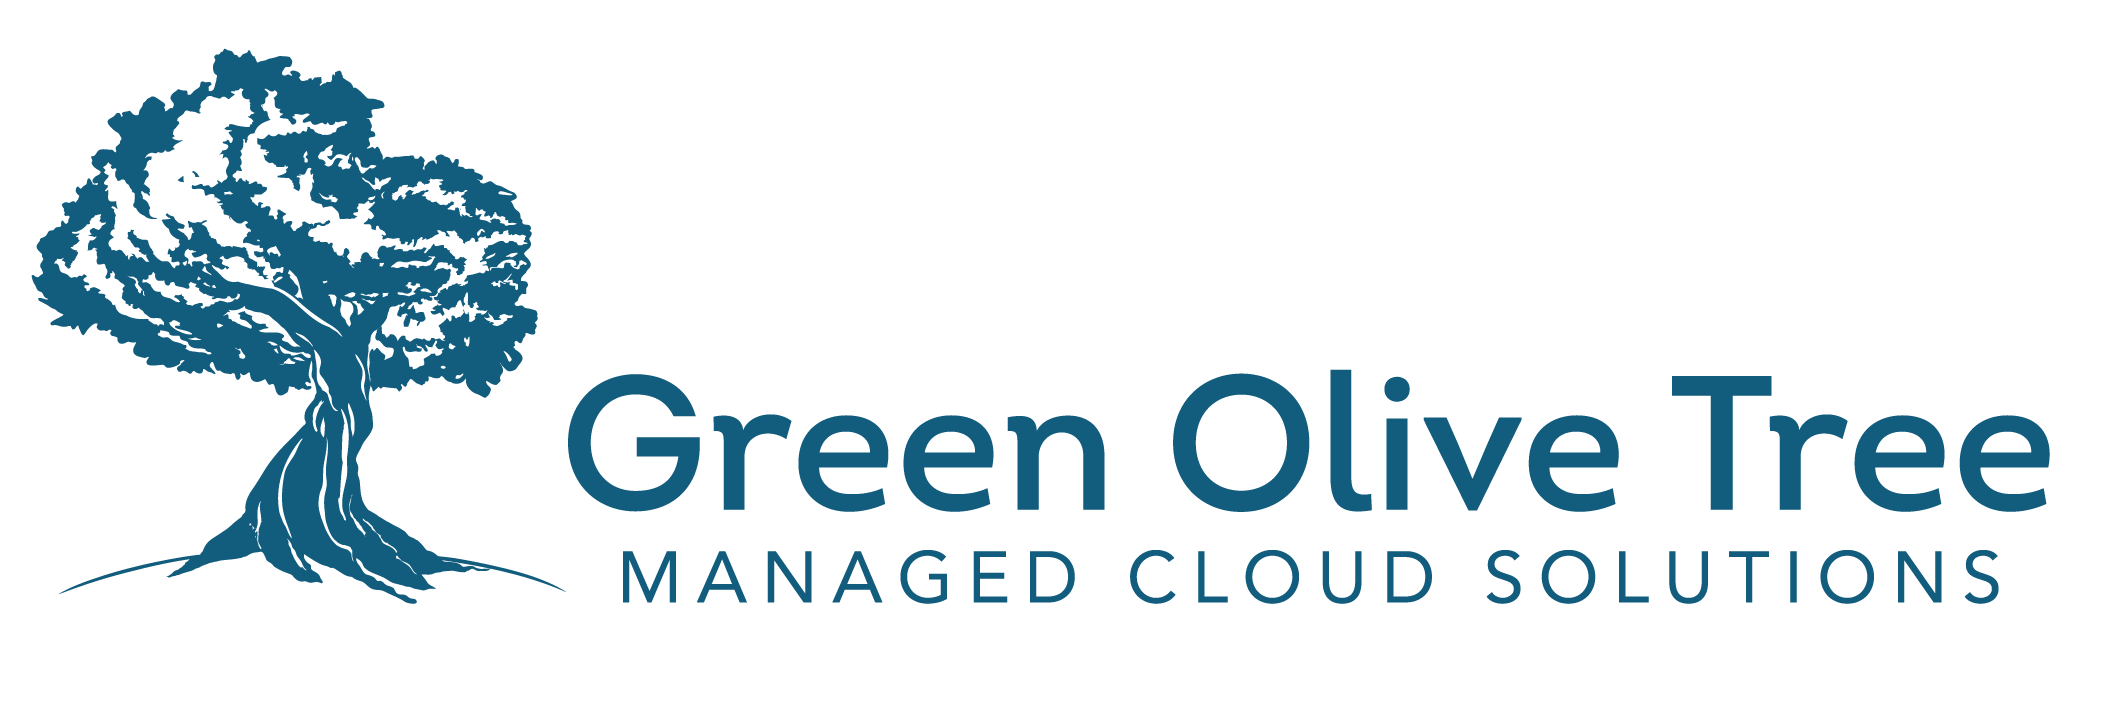 Green Olive Tree, Inc.